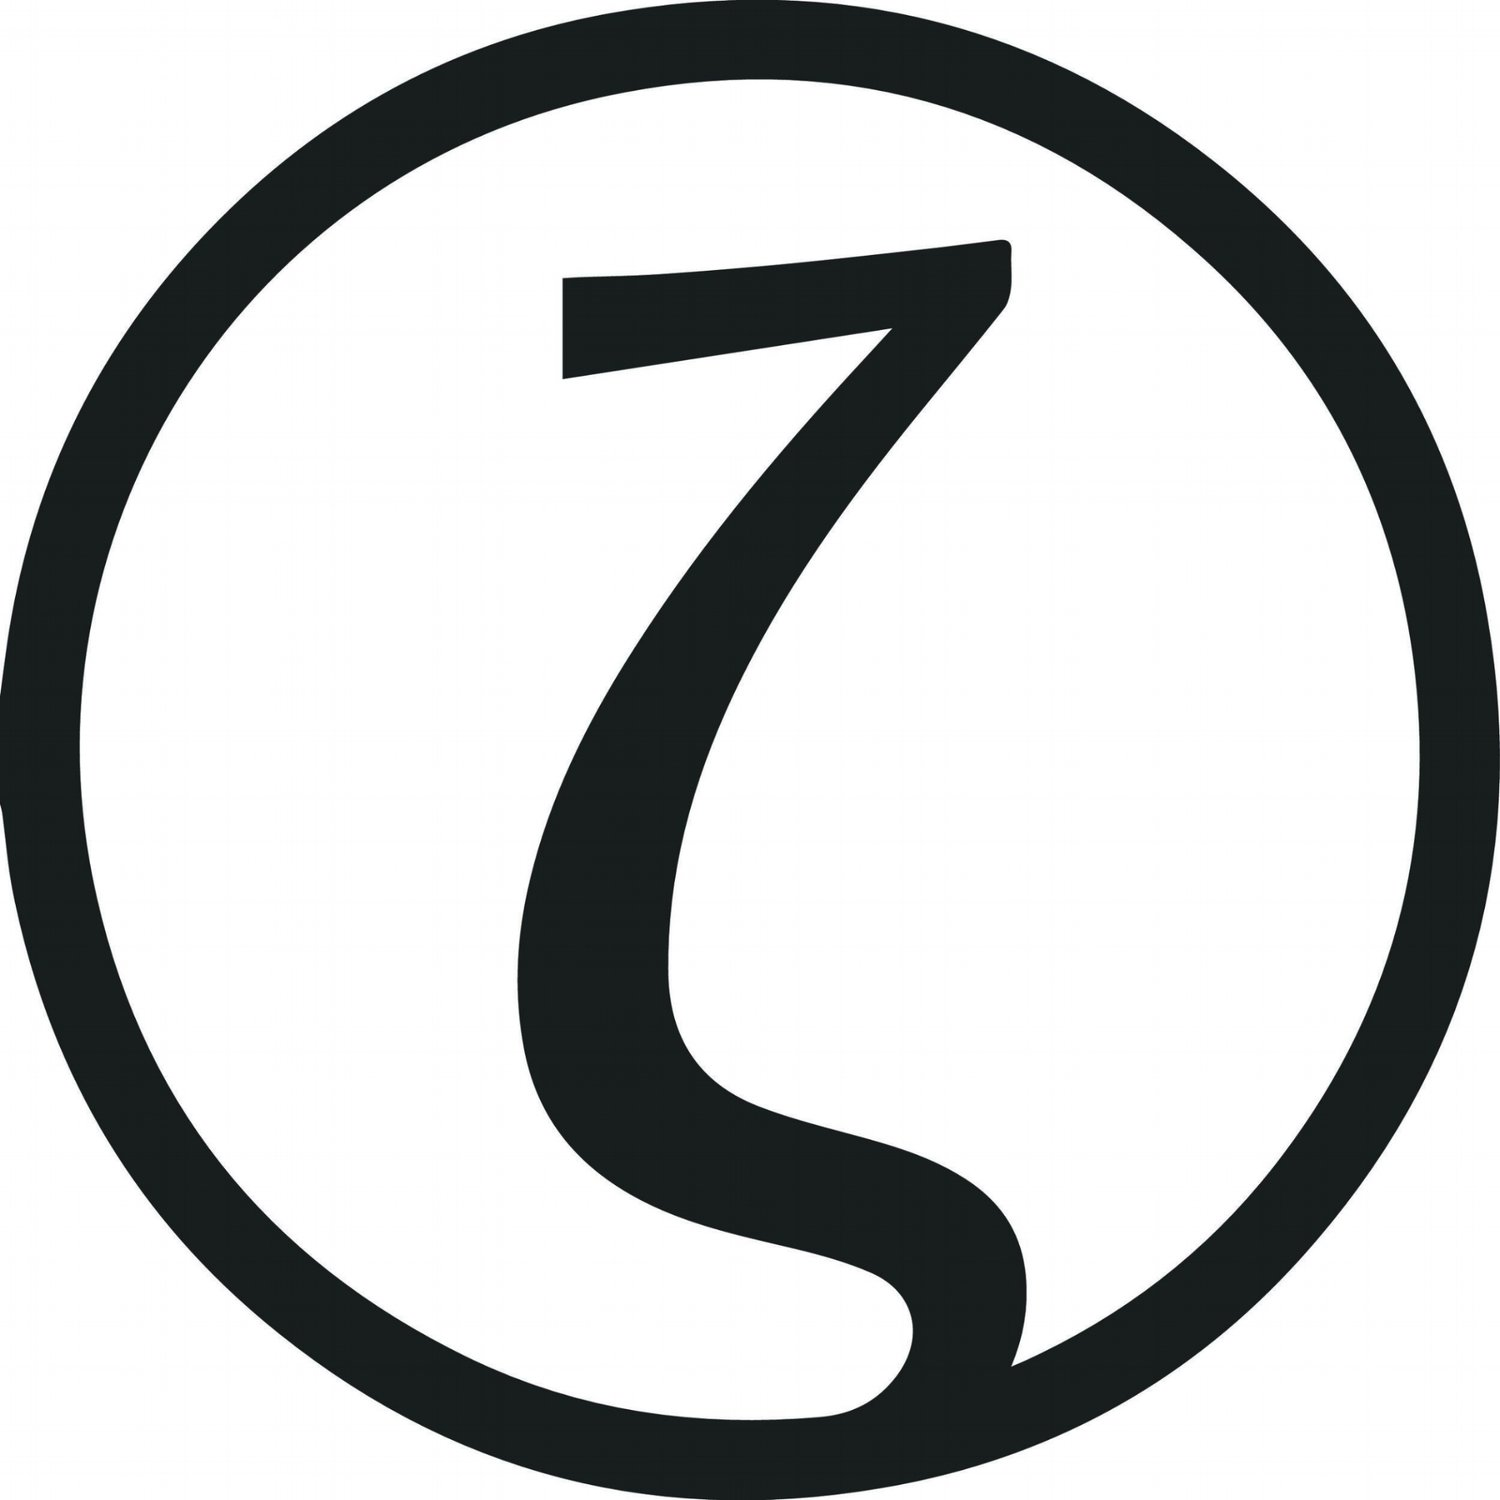 ZETEO COMMUNITY INC